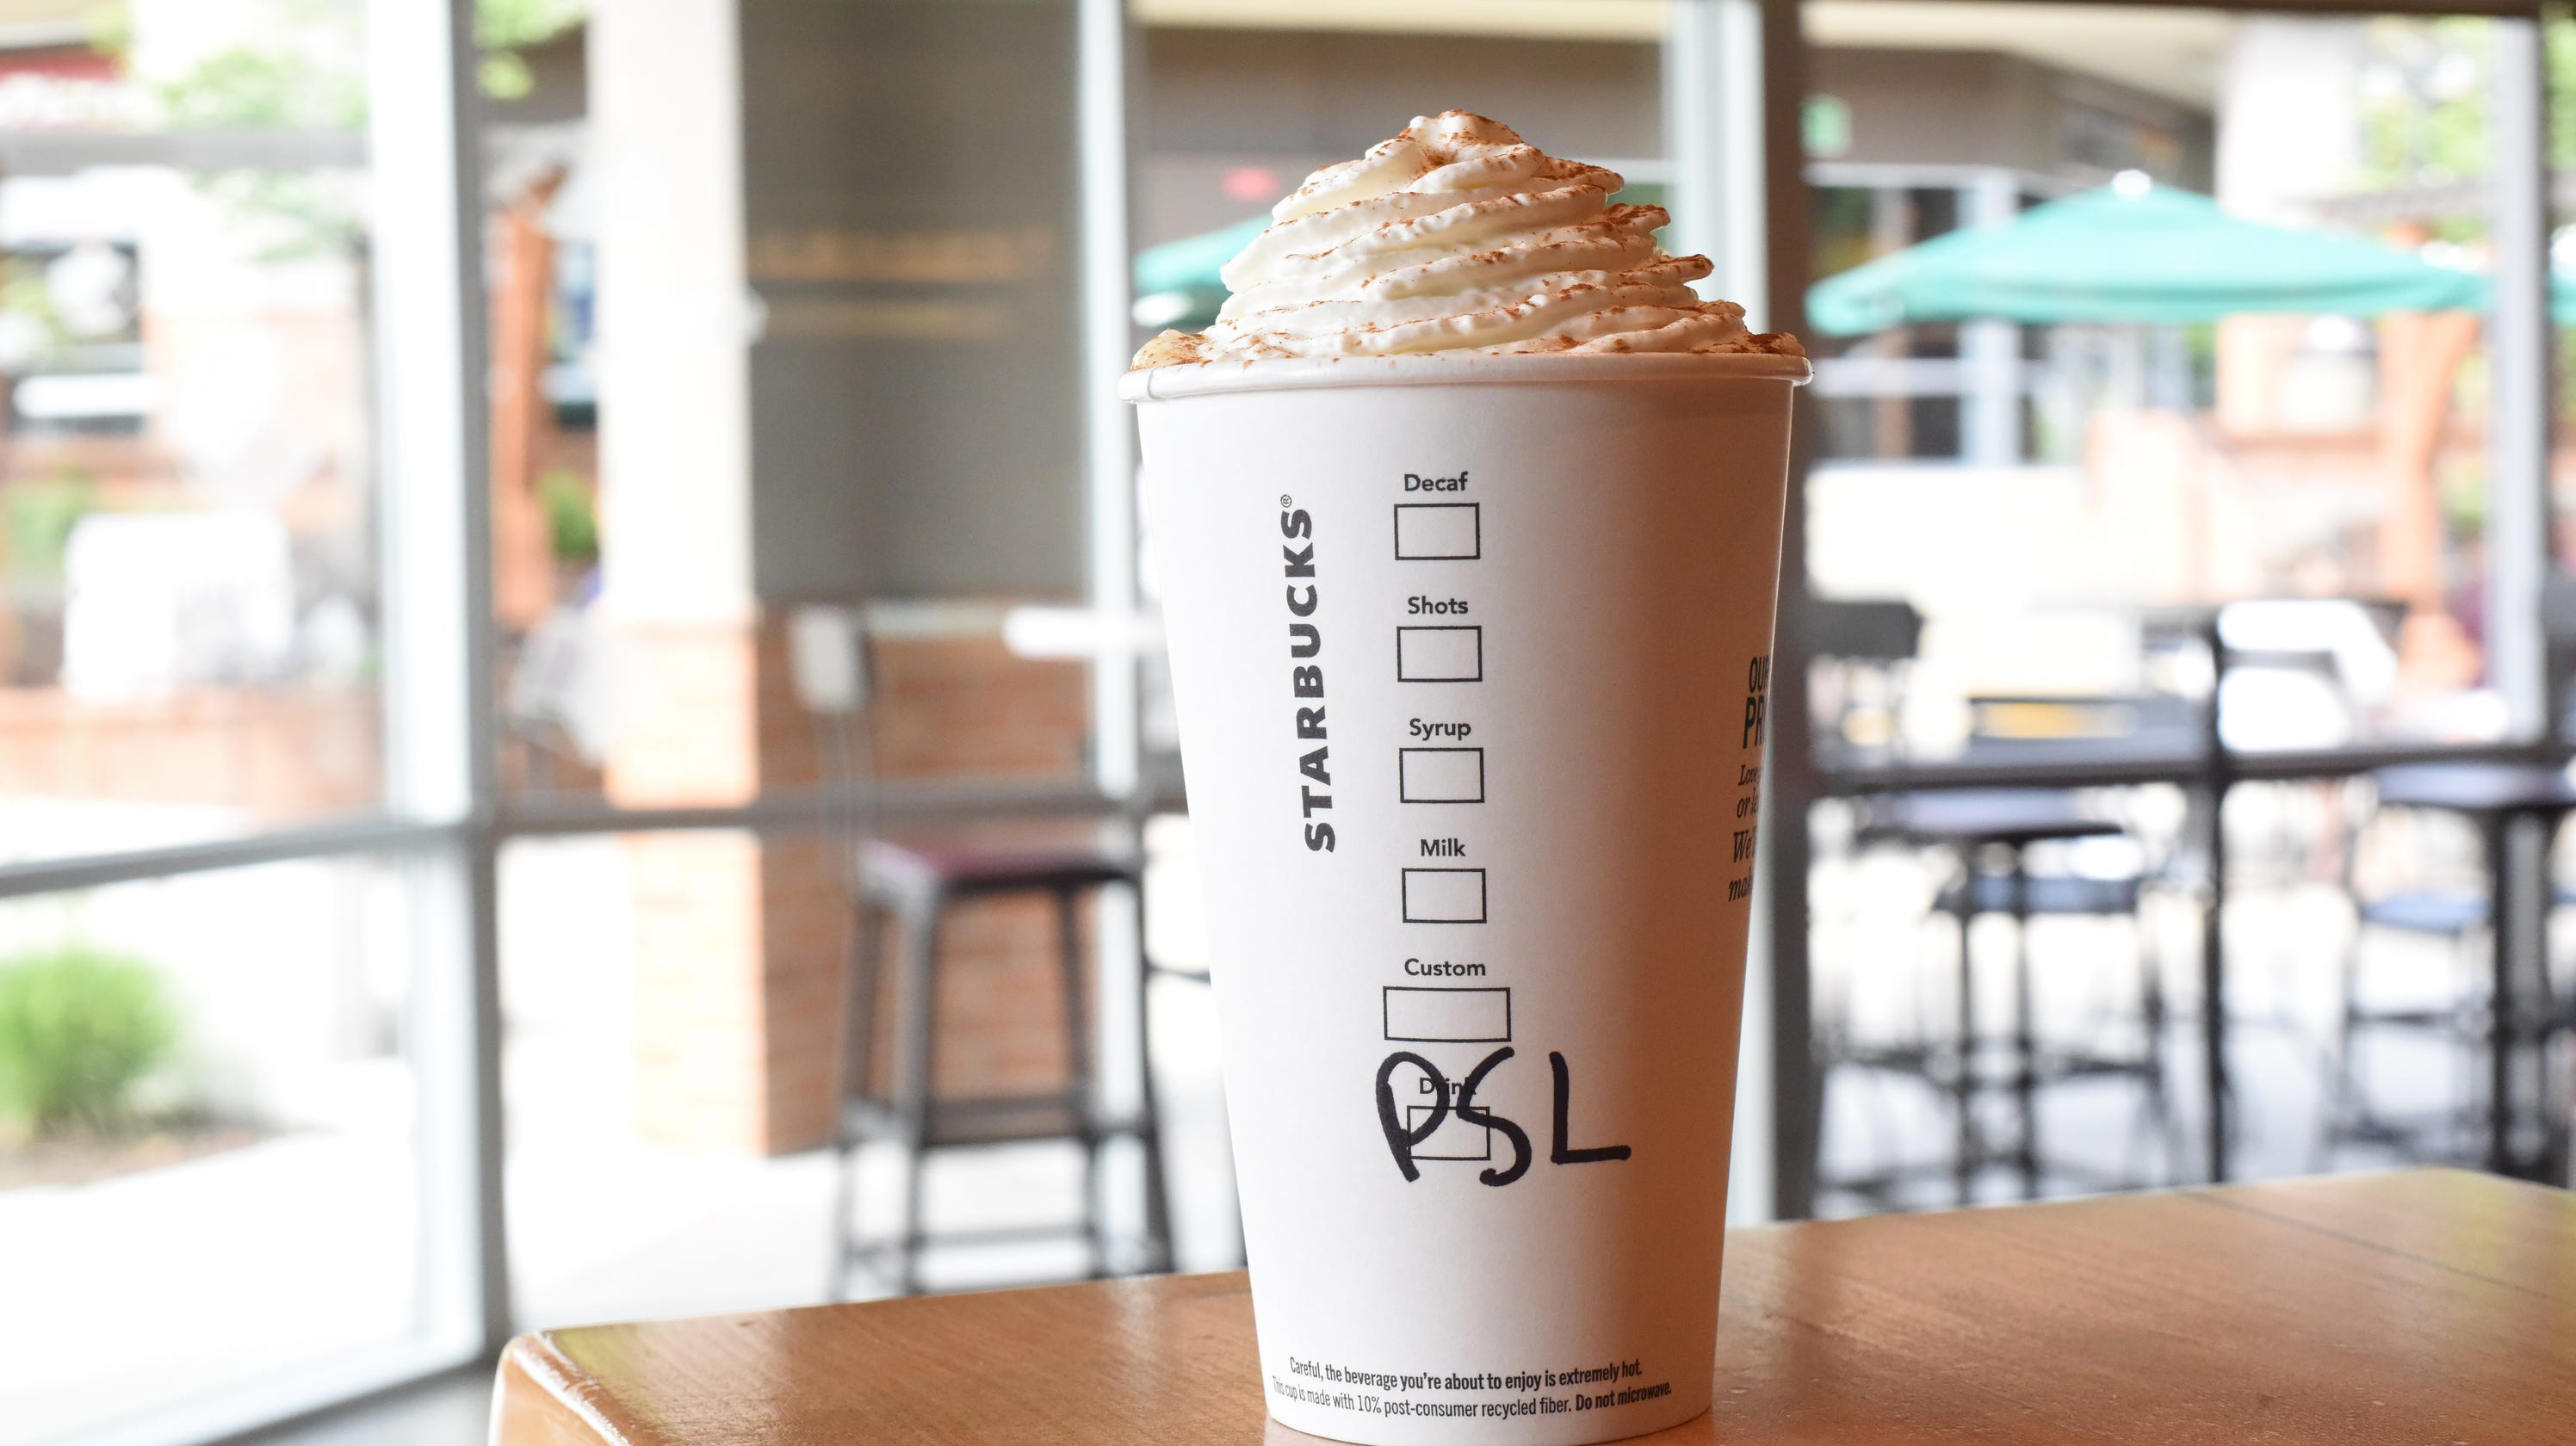 When is pumpkin spice coming to Starbucks, Wawa, Dunkin Donuts?